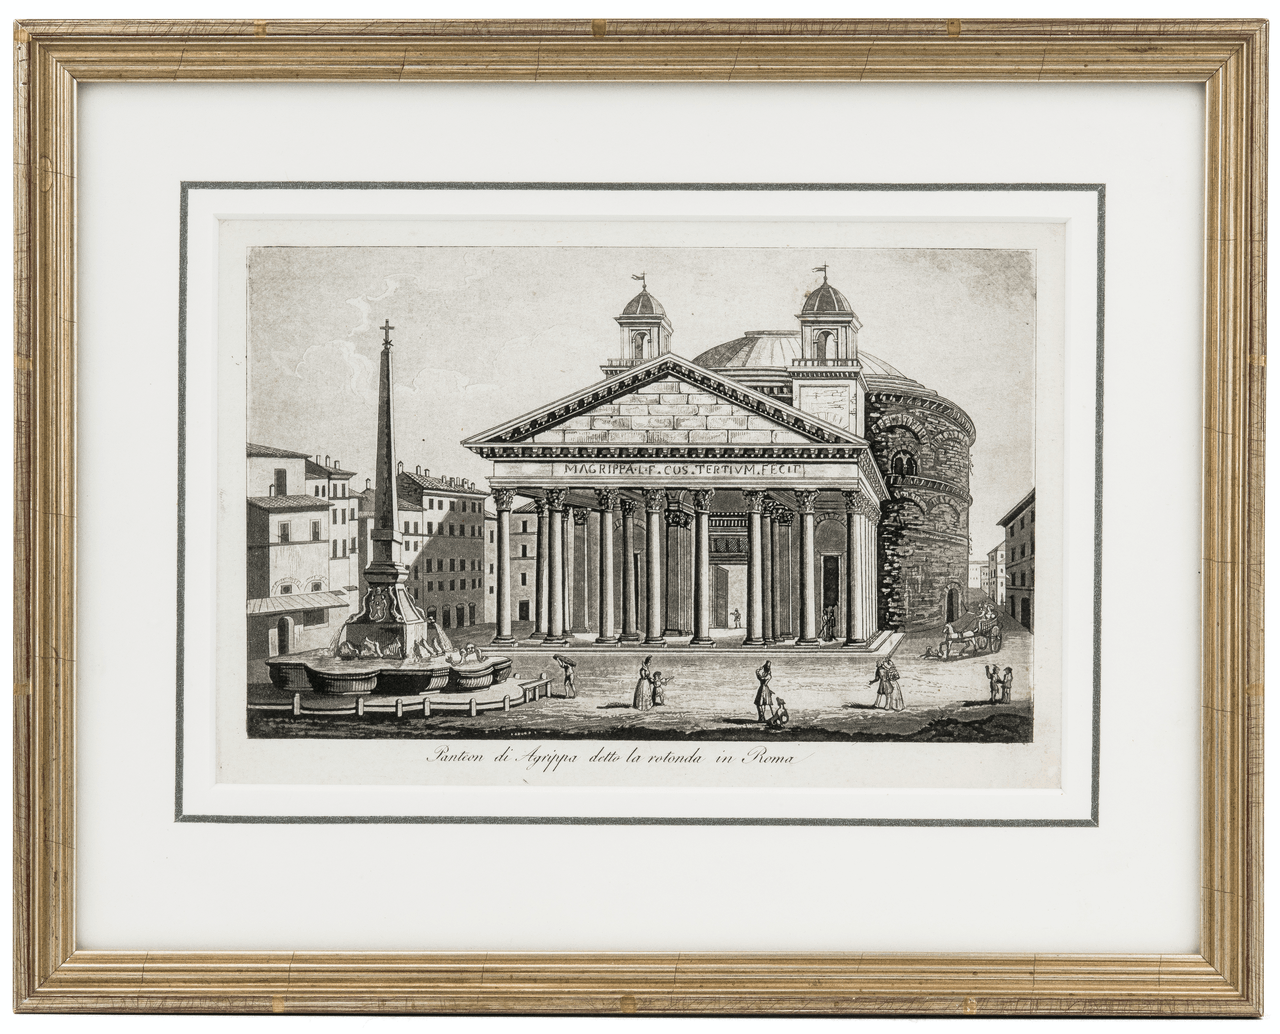 An Antique Framed Print Of The Pantheon Rome, Italy By Antonio Lazzarini